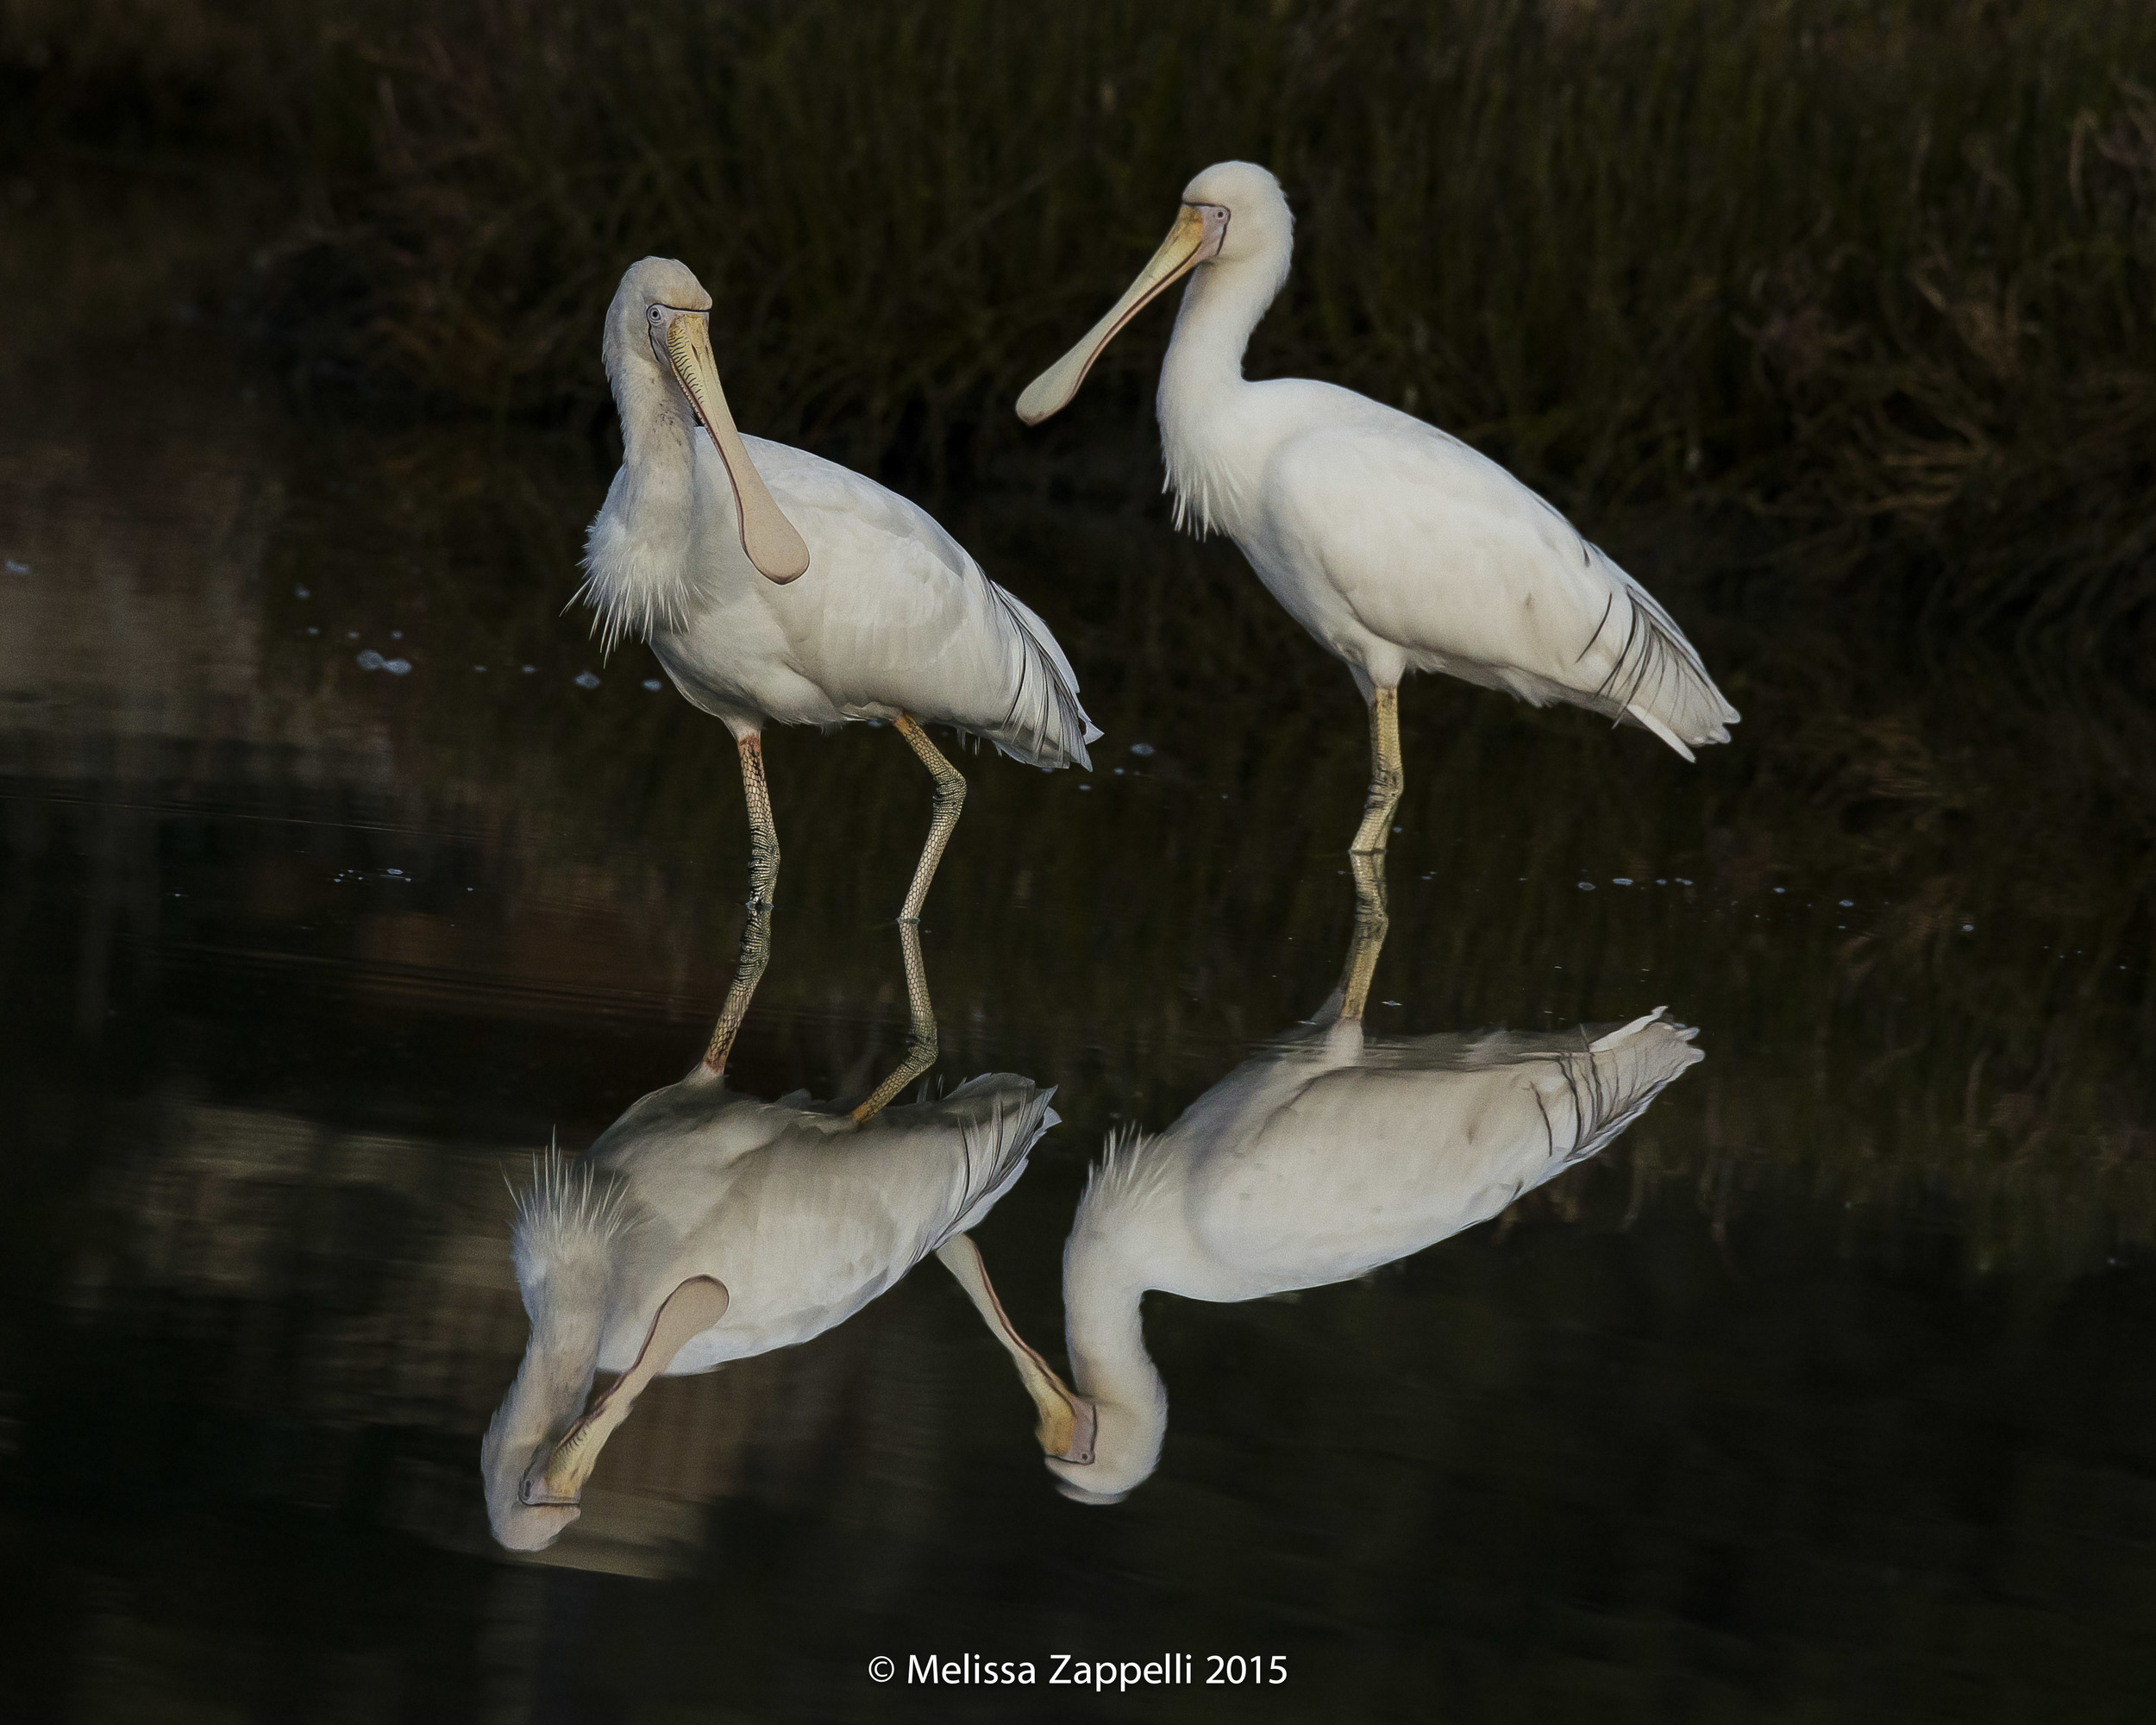 Spoonbills Against a Very Dark Background Settings ISO 1000, 400mm, f8, 1/3200